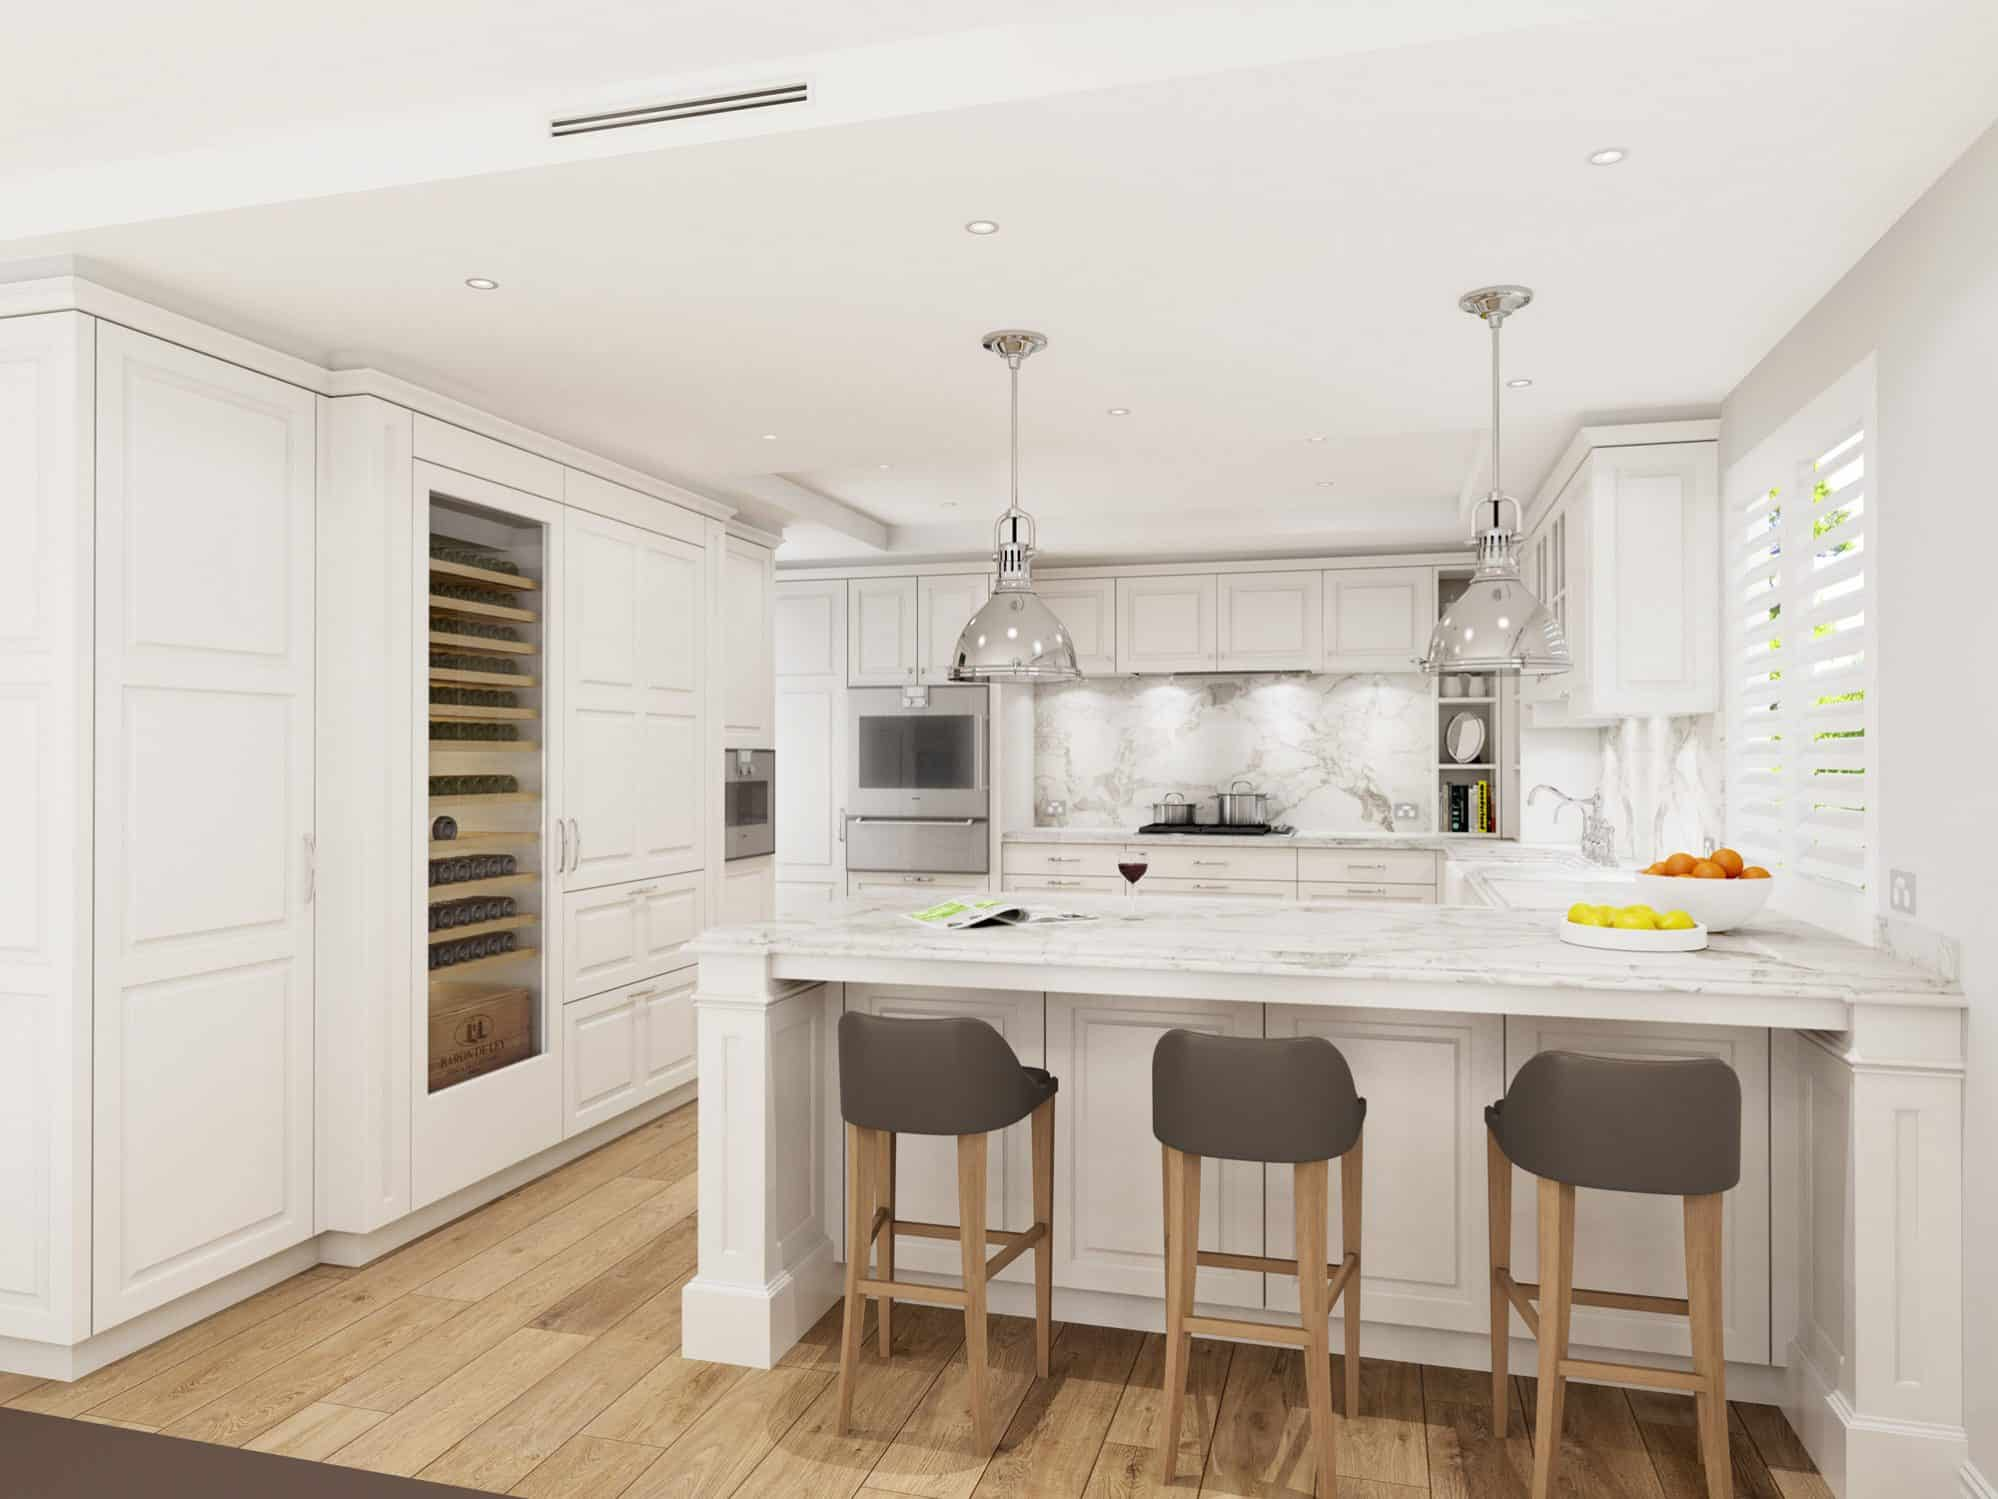 Hamptons kitchen with white doors and calacatta marble tops